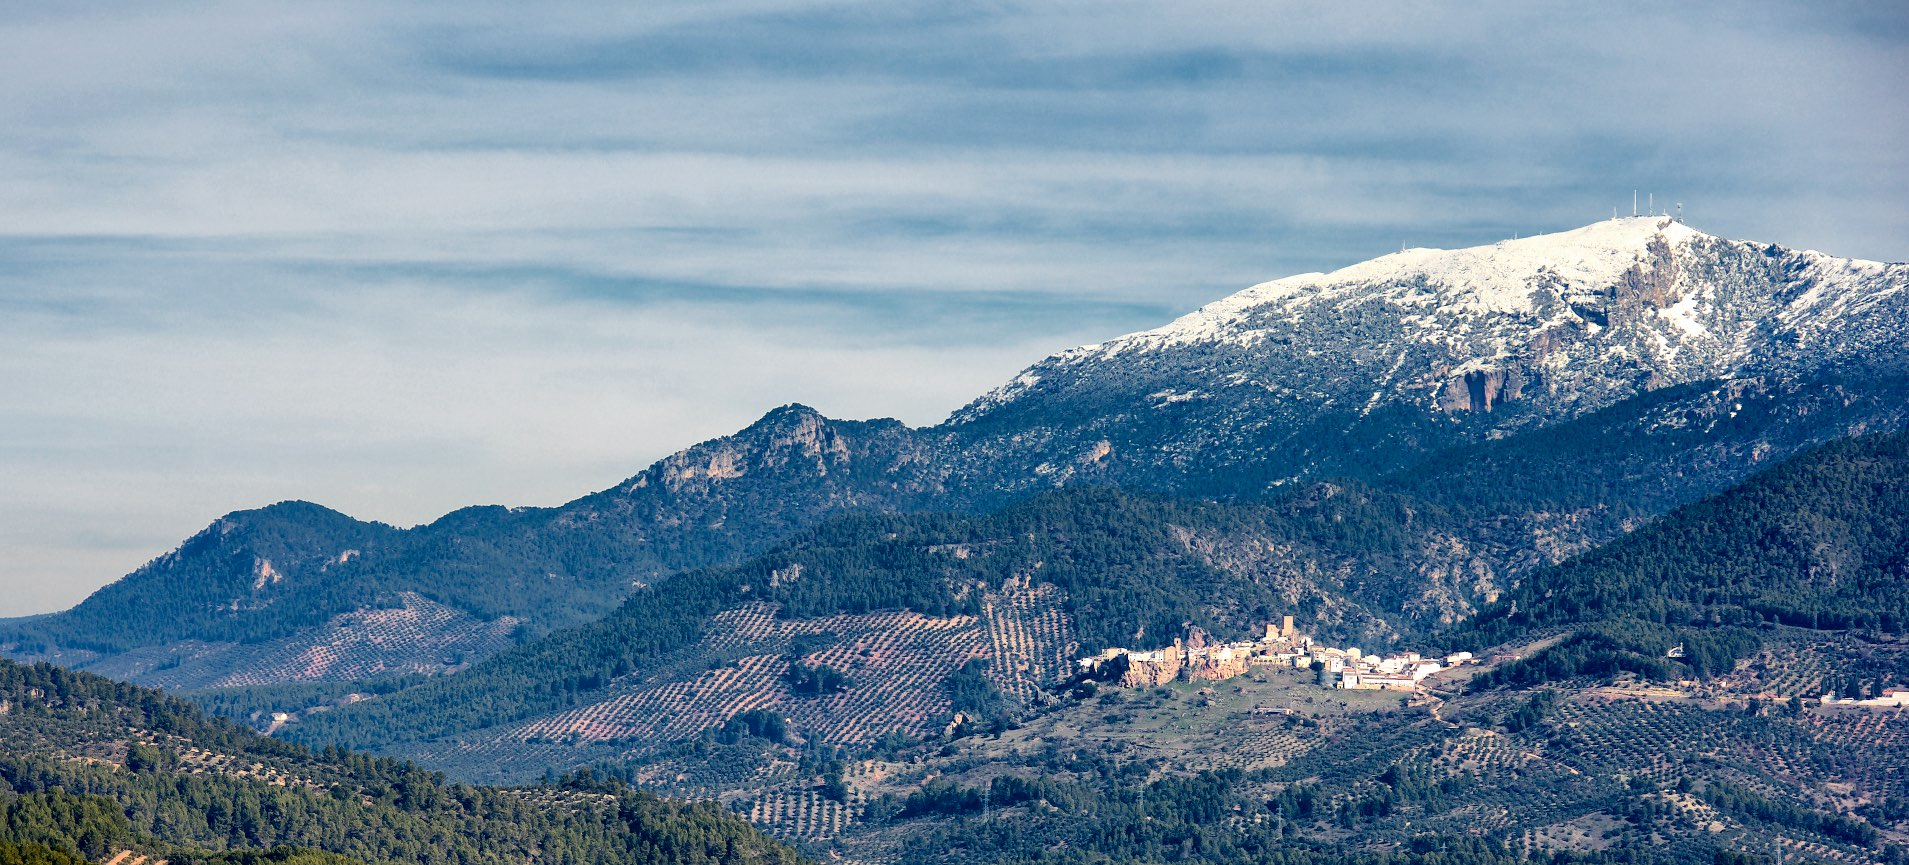 Great Cycling Climbs of Andalucia - El Yelmo - The Great Helm